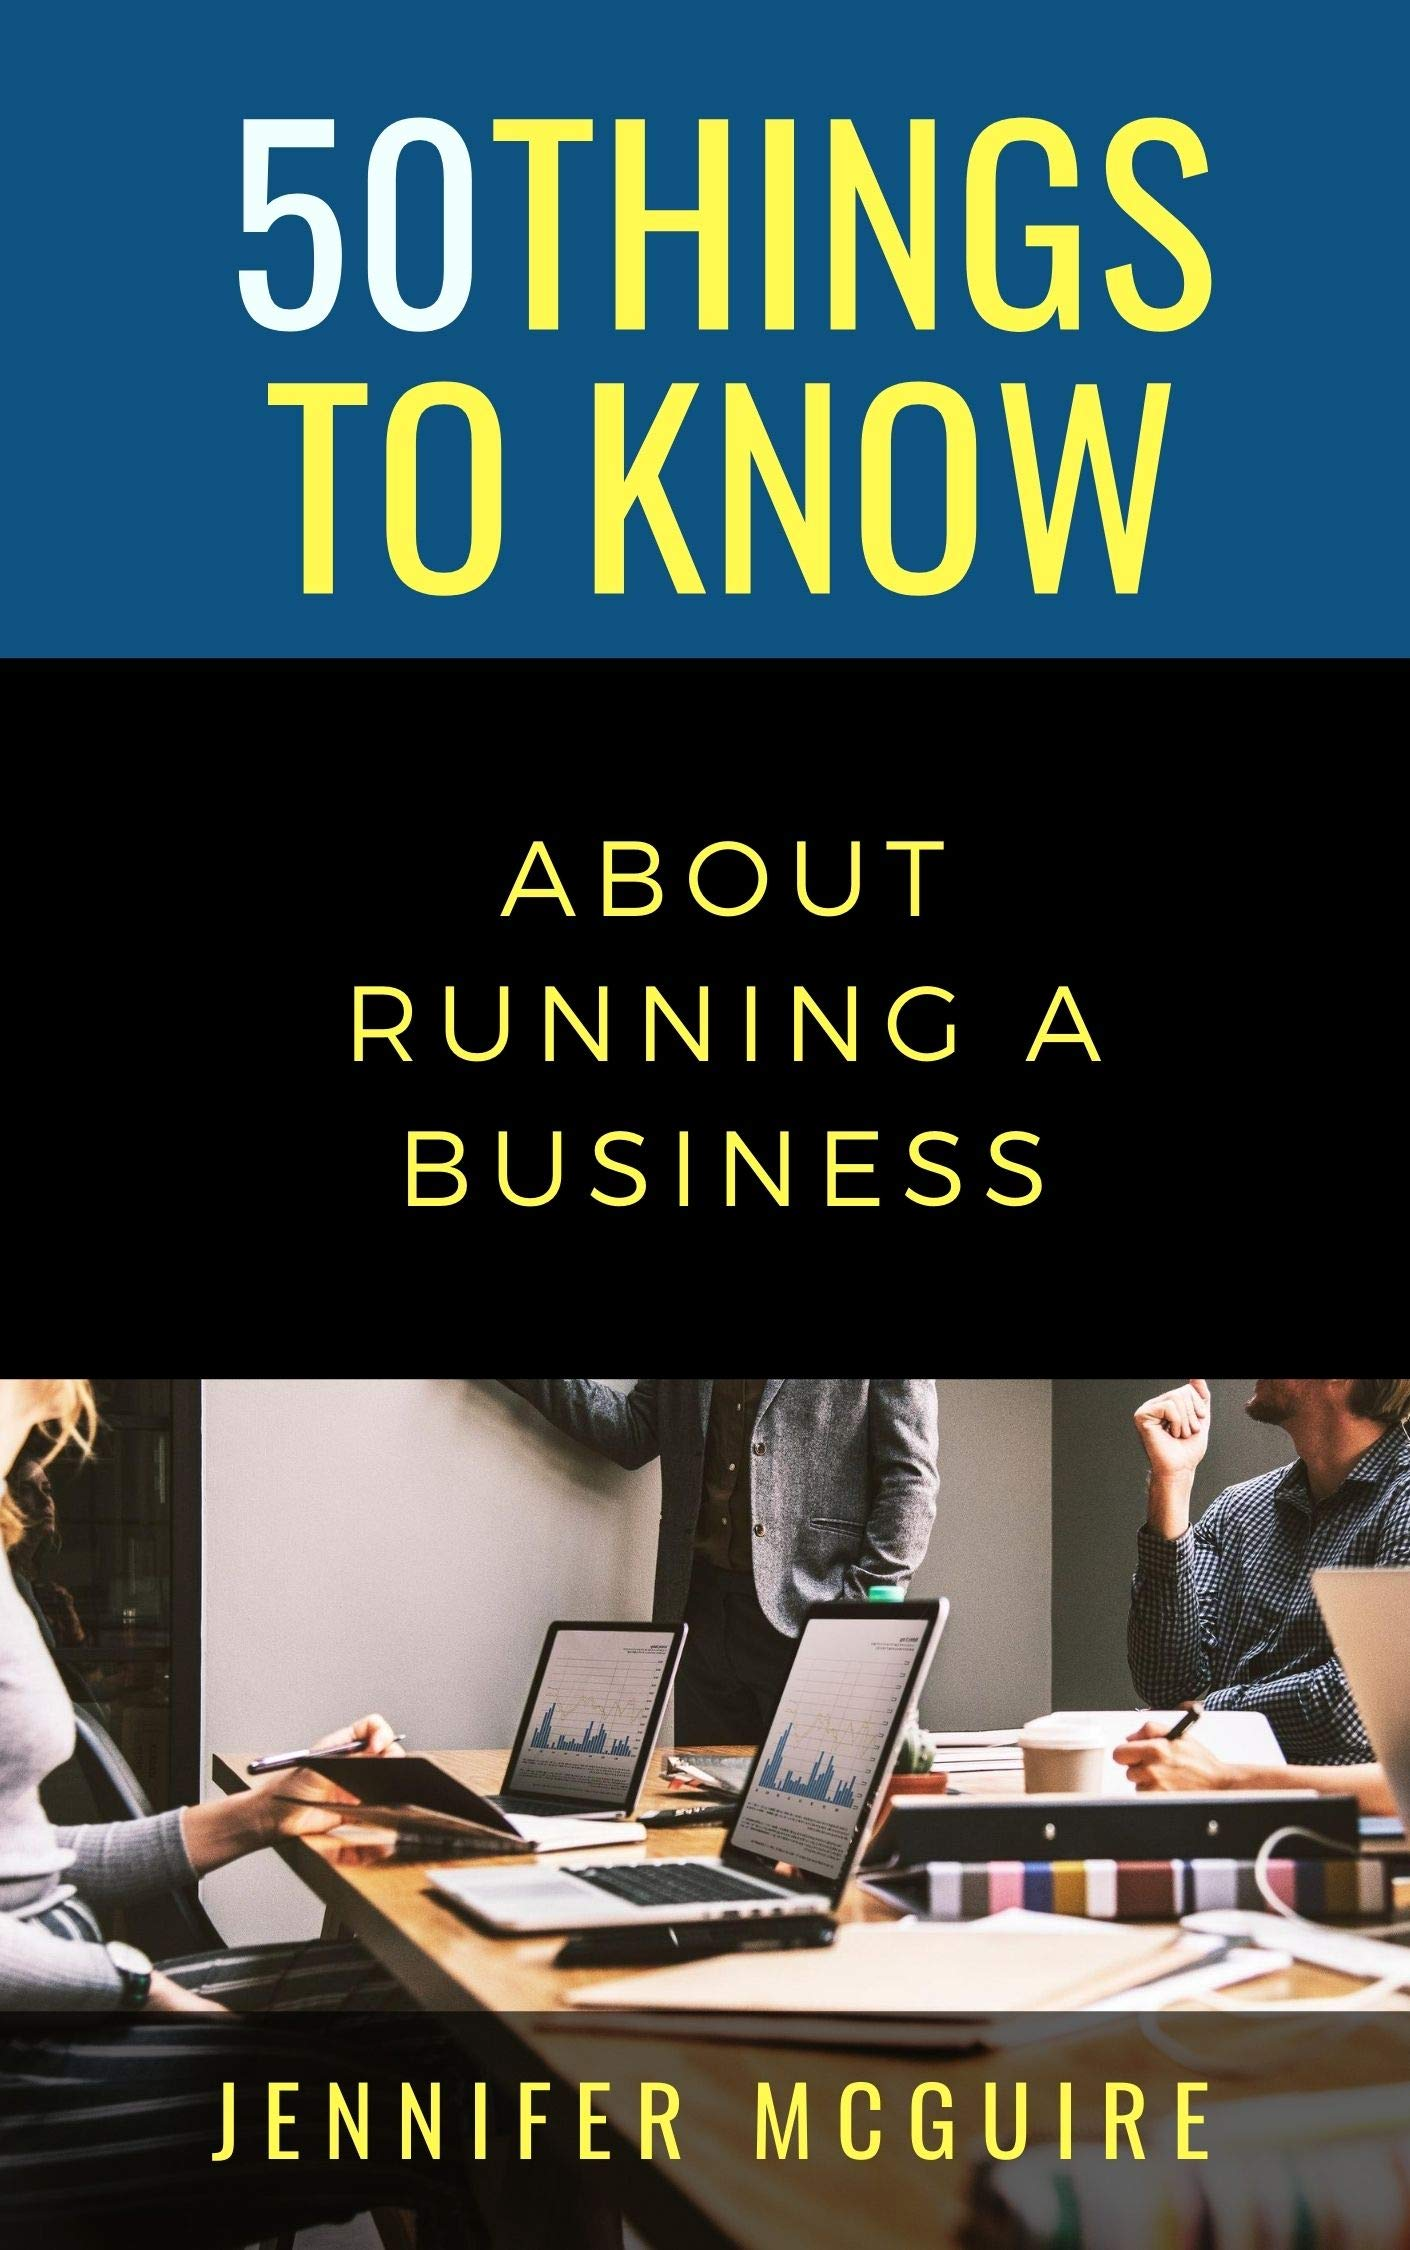 50 THINGS TO KNOW ABOUT RUNNING A BUSINESS: PLAN, EXECUTE, AND SUCCEED